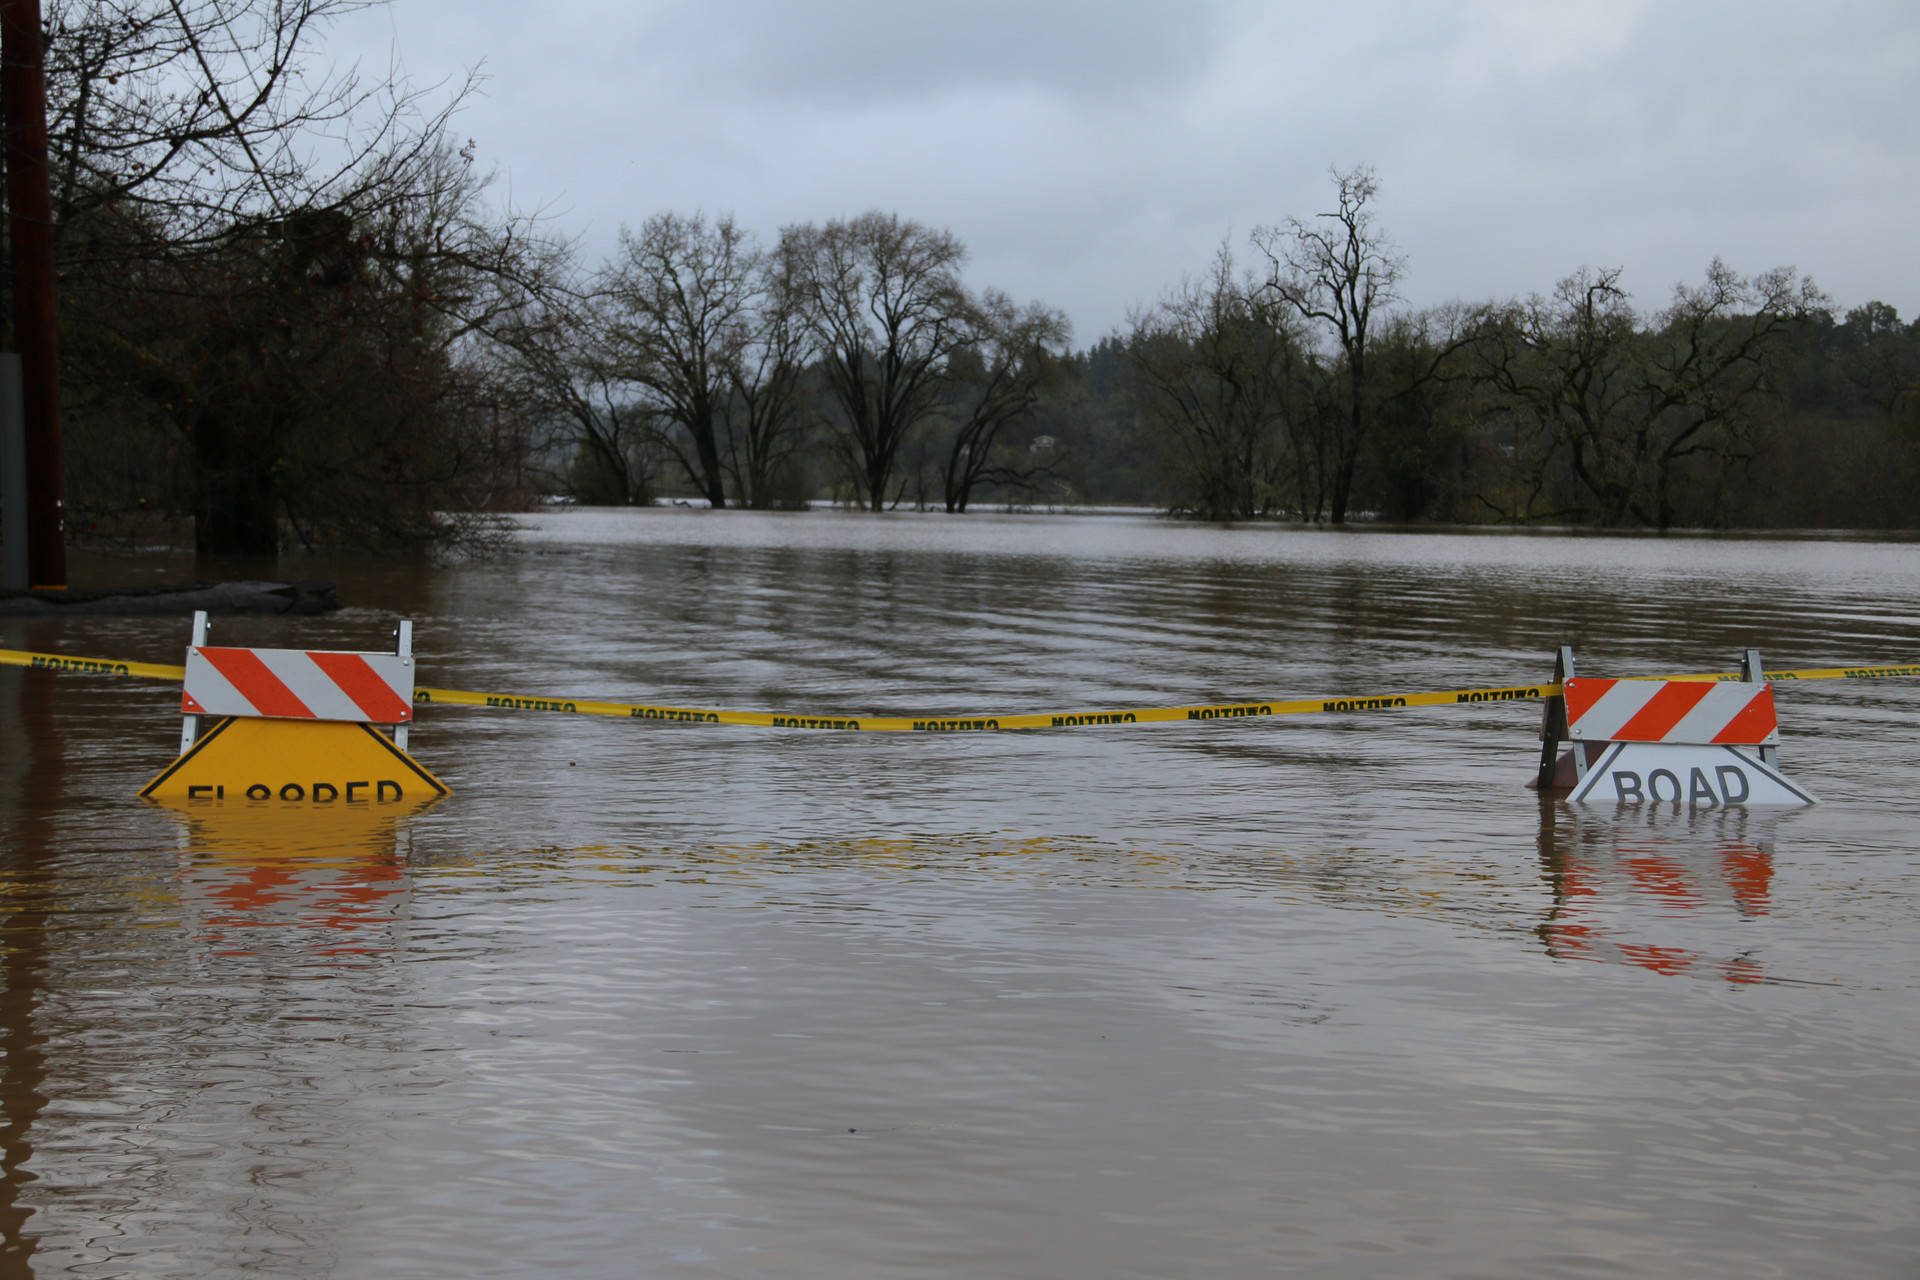 Wohler Road flooded and closed at River Road during Russian River flooding in Sonoma County on Feb. 27, 2019. Adam Grossberg/KQED